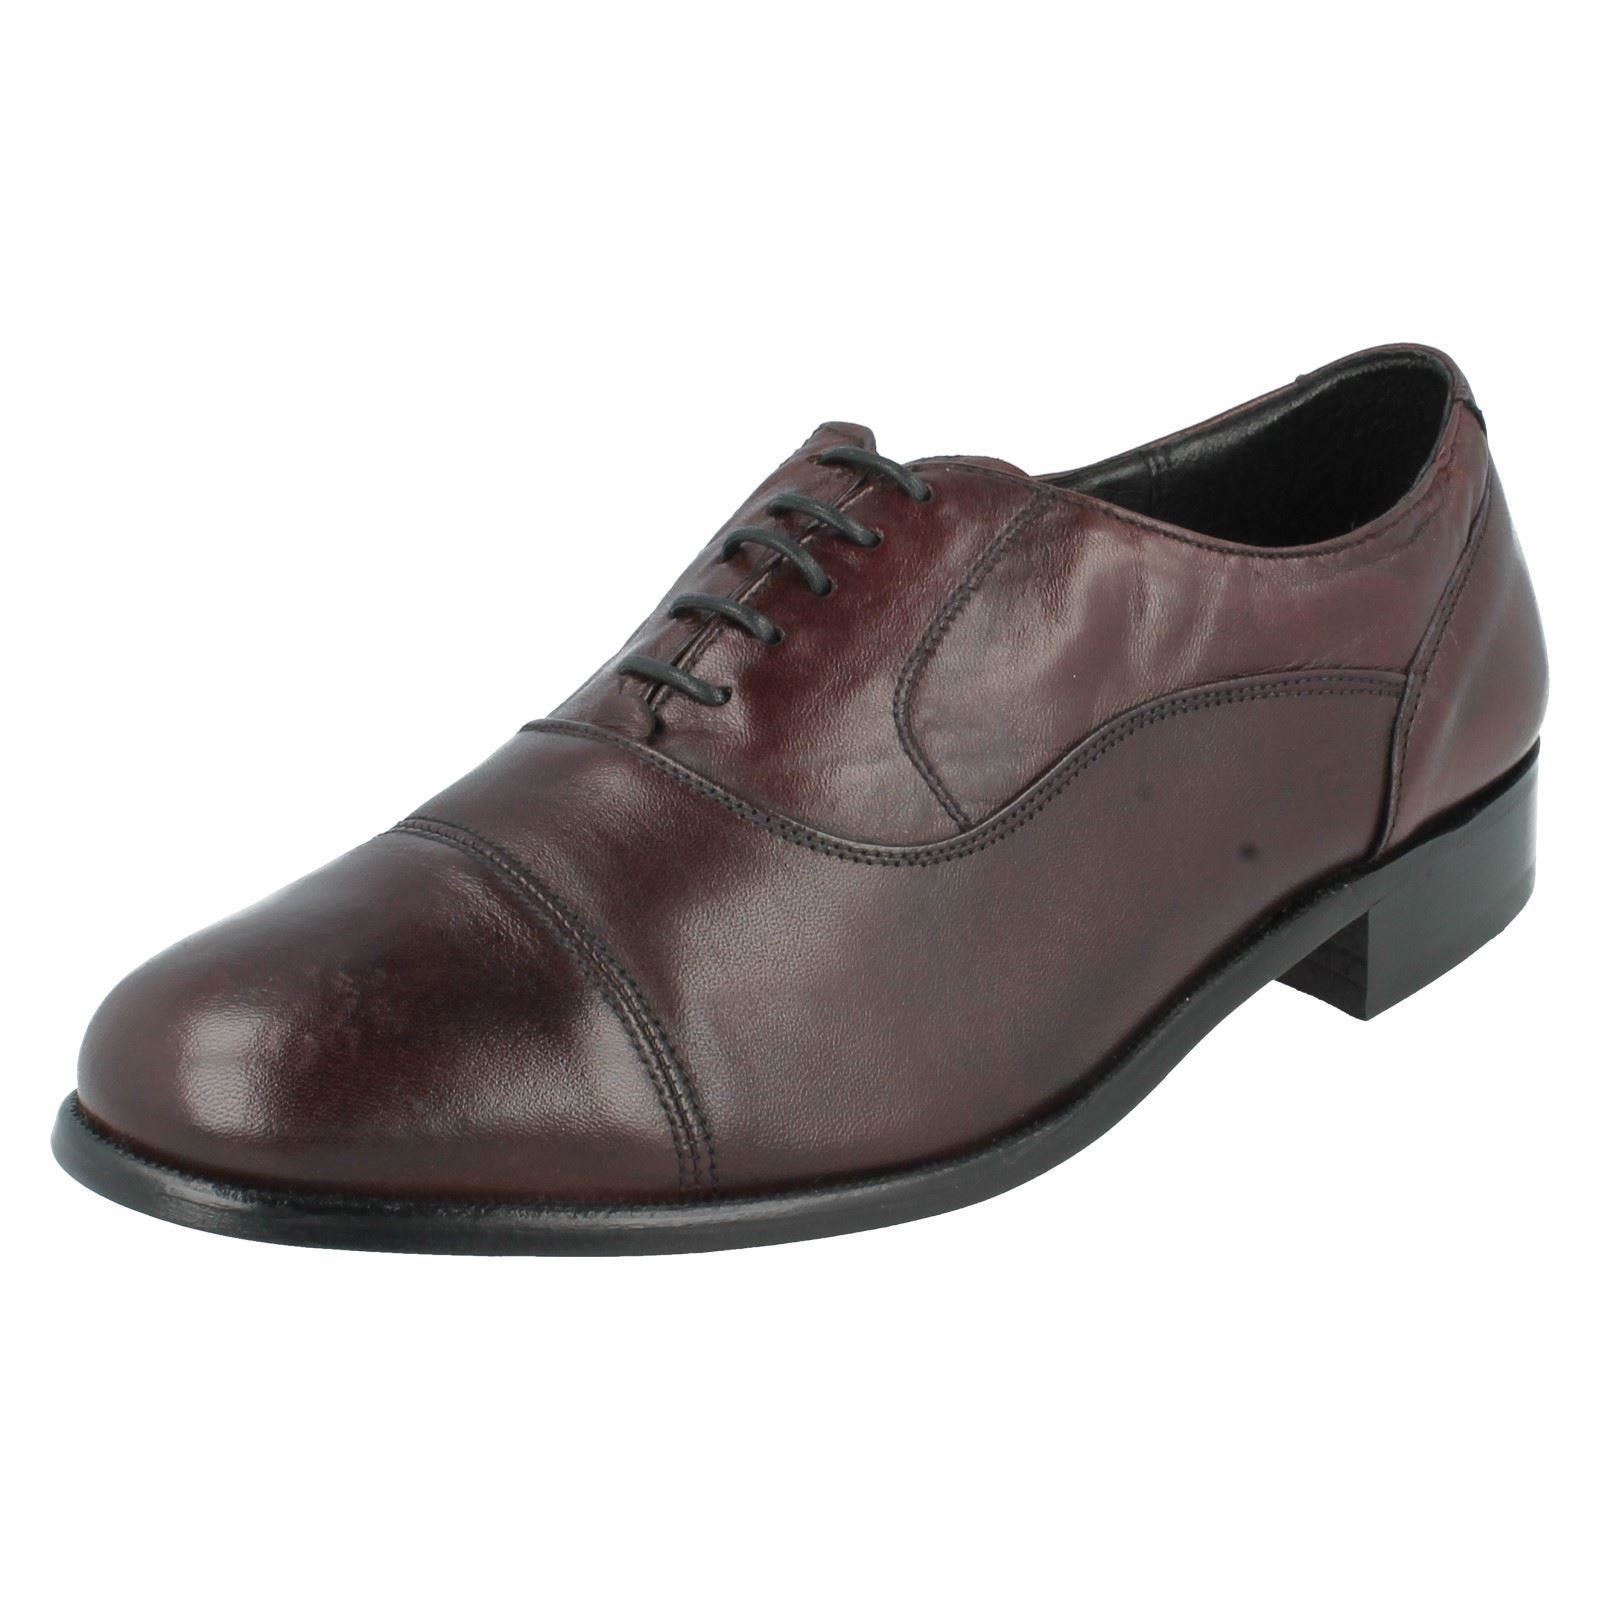 Mens Seaton Grenson Formal Leather Shoes Seaton Mens 7615 Fitting F cb7c3f